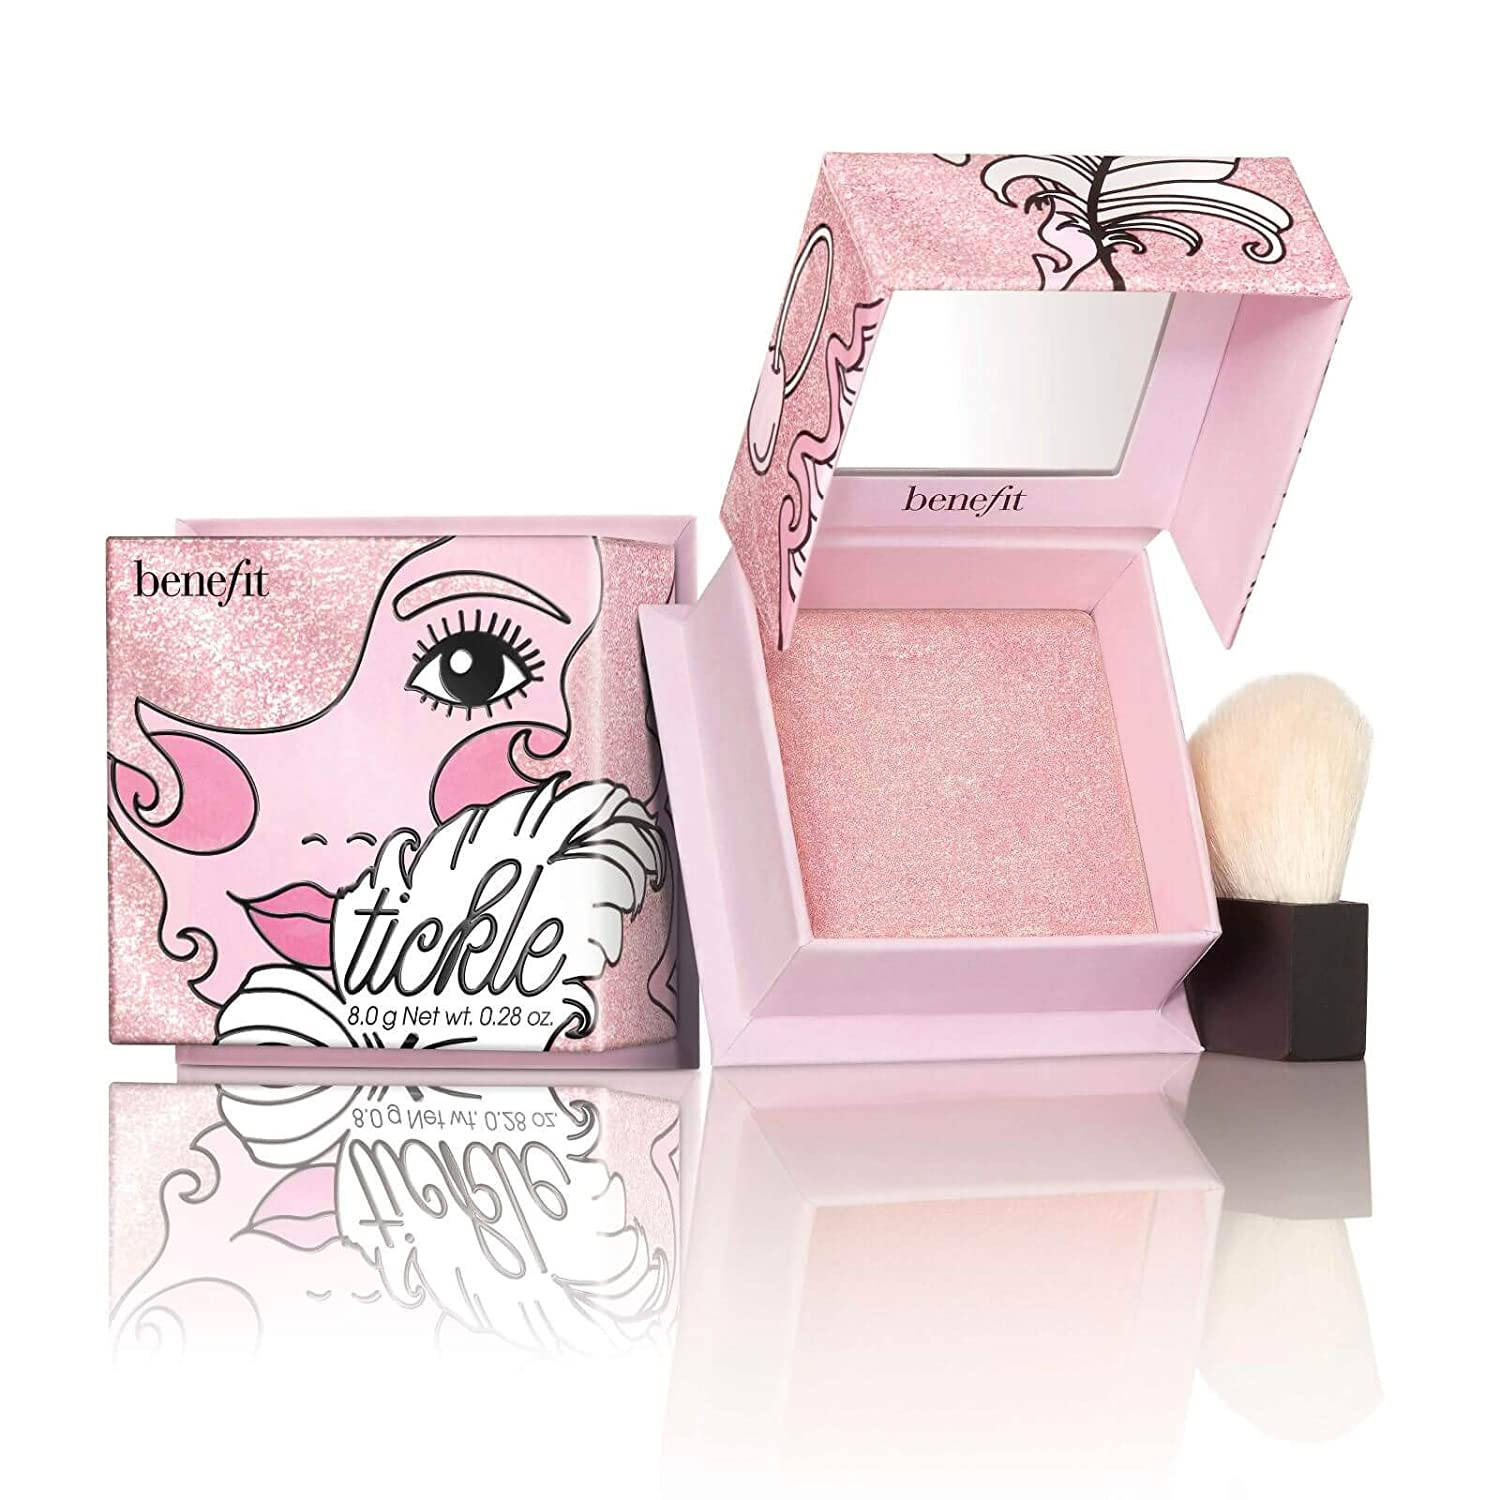 Benefit Cosmetics Tickle Powder Highlighter - Full Size